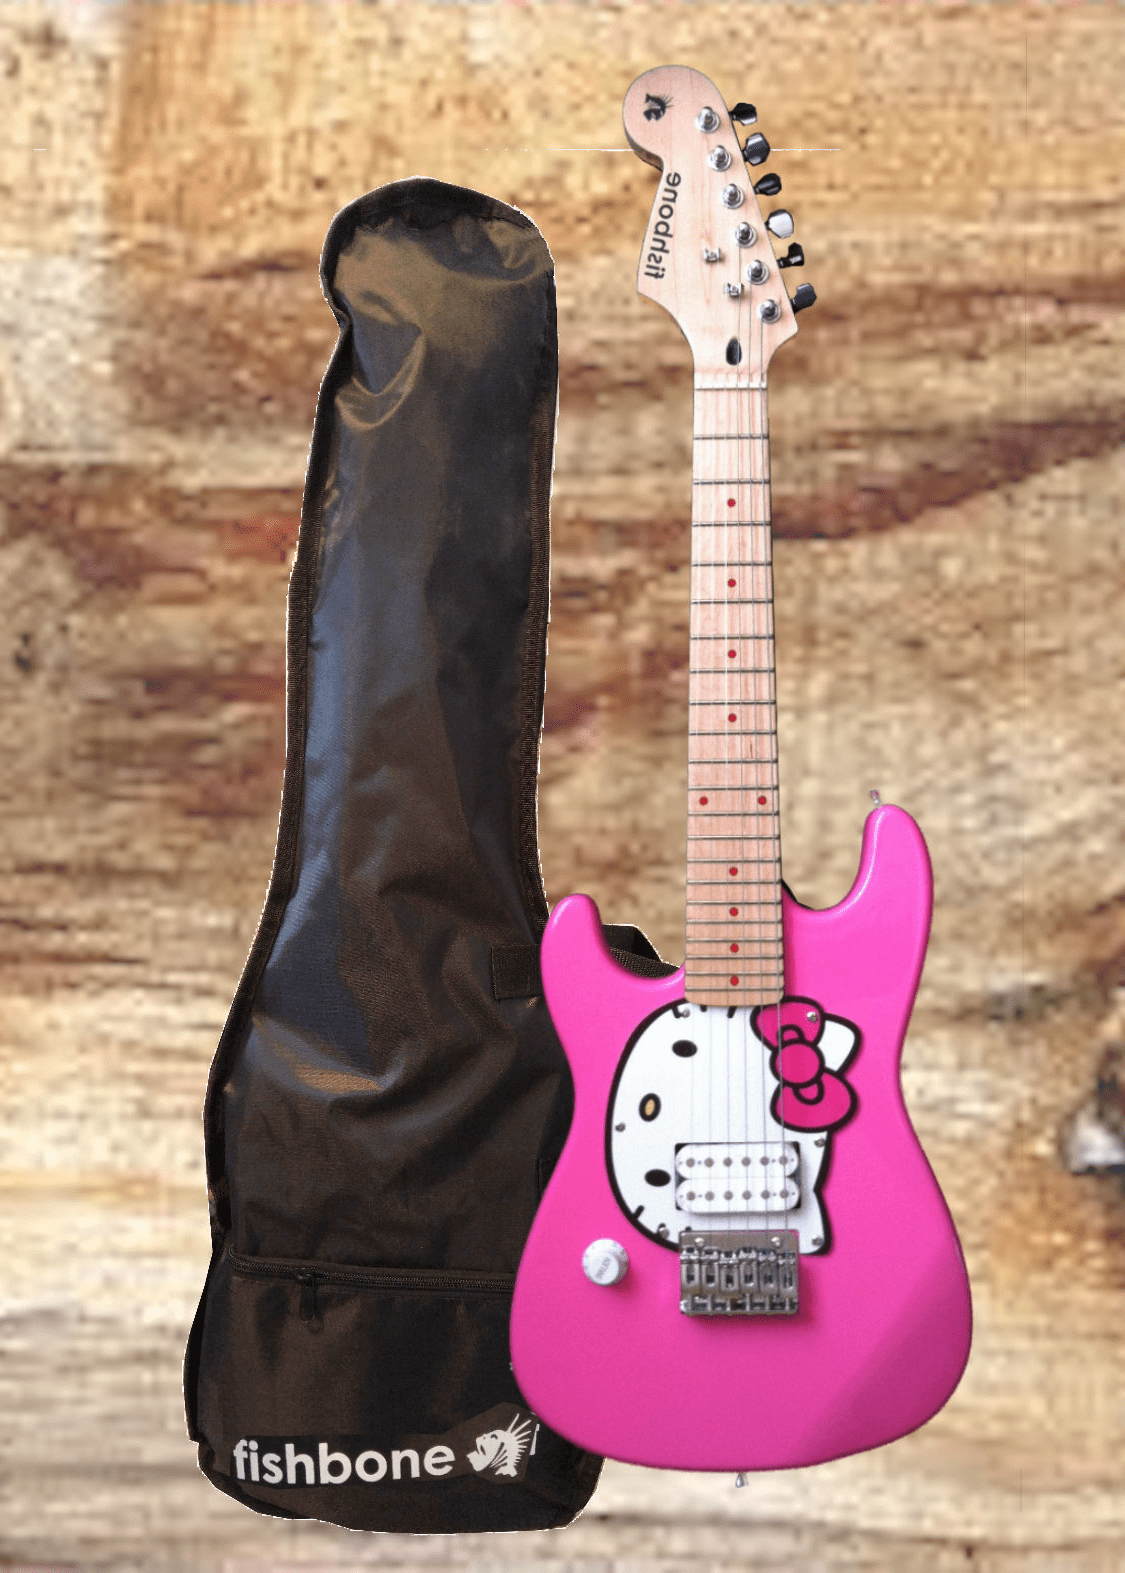 fishbone HELLO KITTY-PINK 3/4 Size LEFTY Travel Guitar